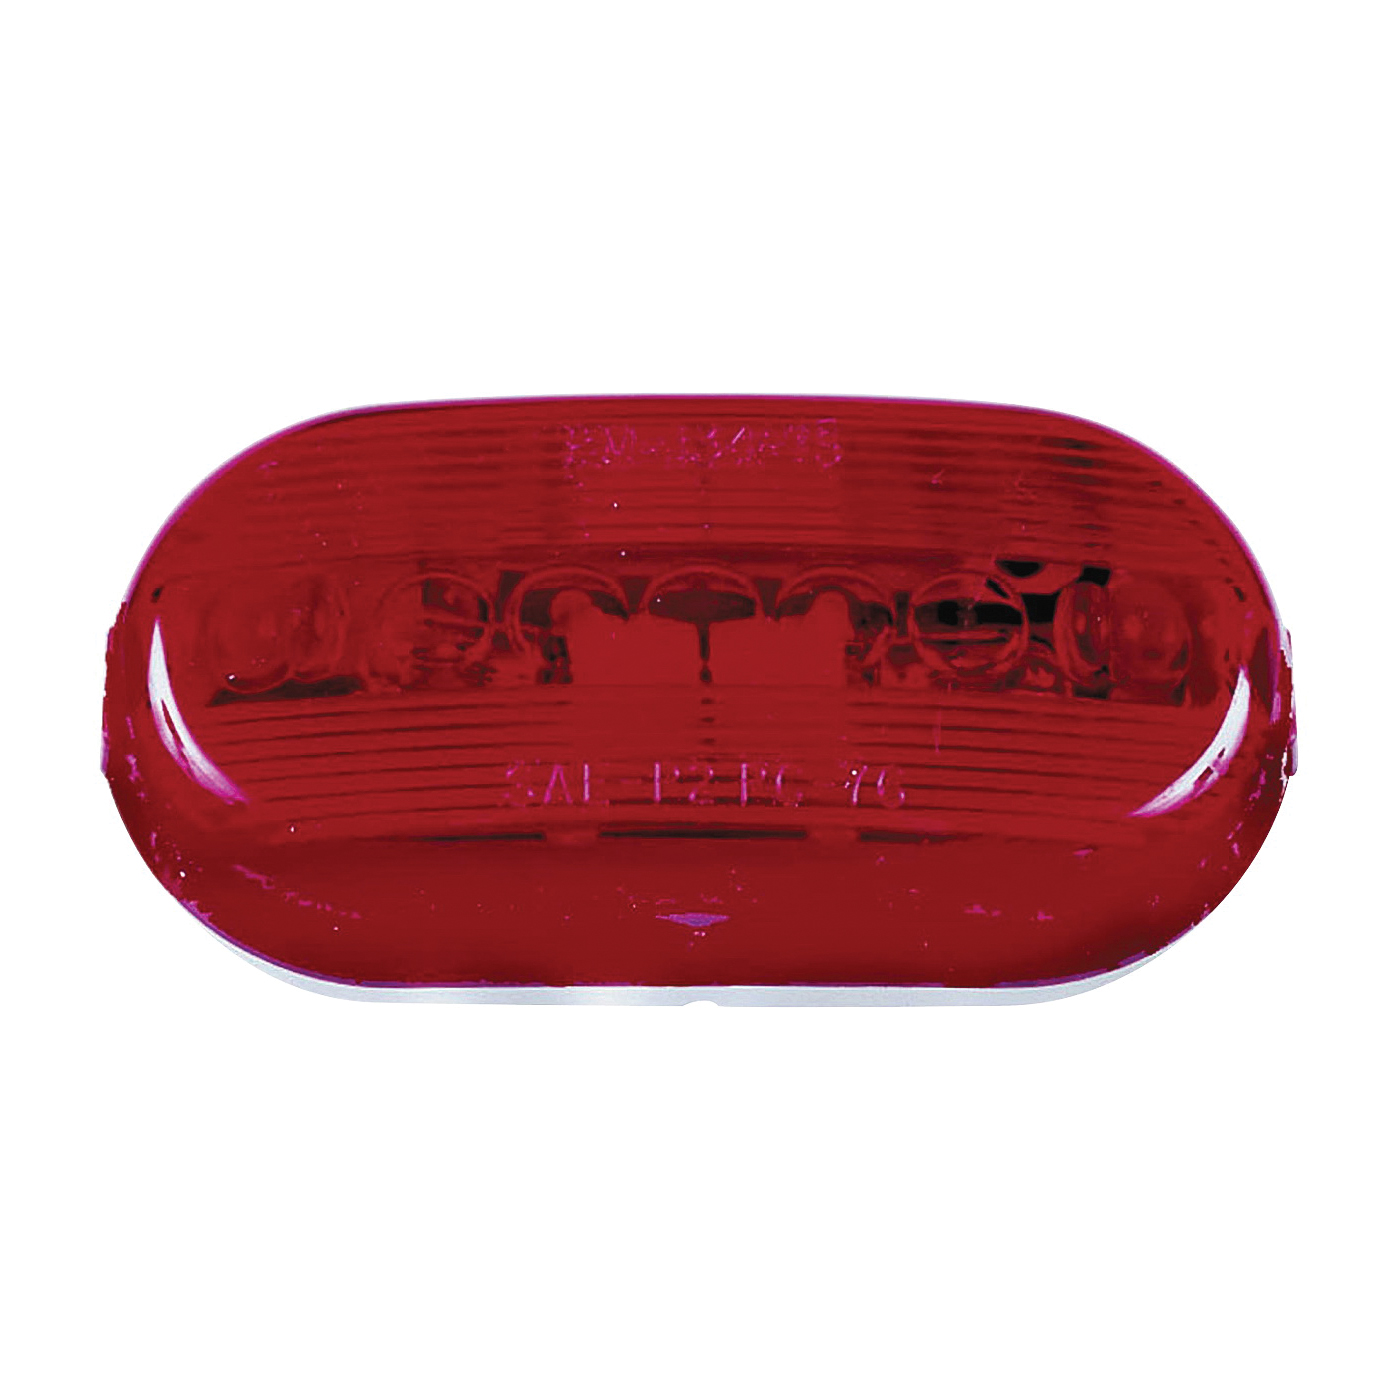 Picture of PM V135R Marker Light, 2 -Lamp, Incandescent Lamp, Red Lamp